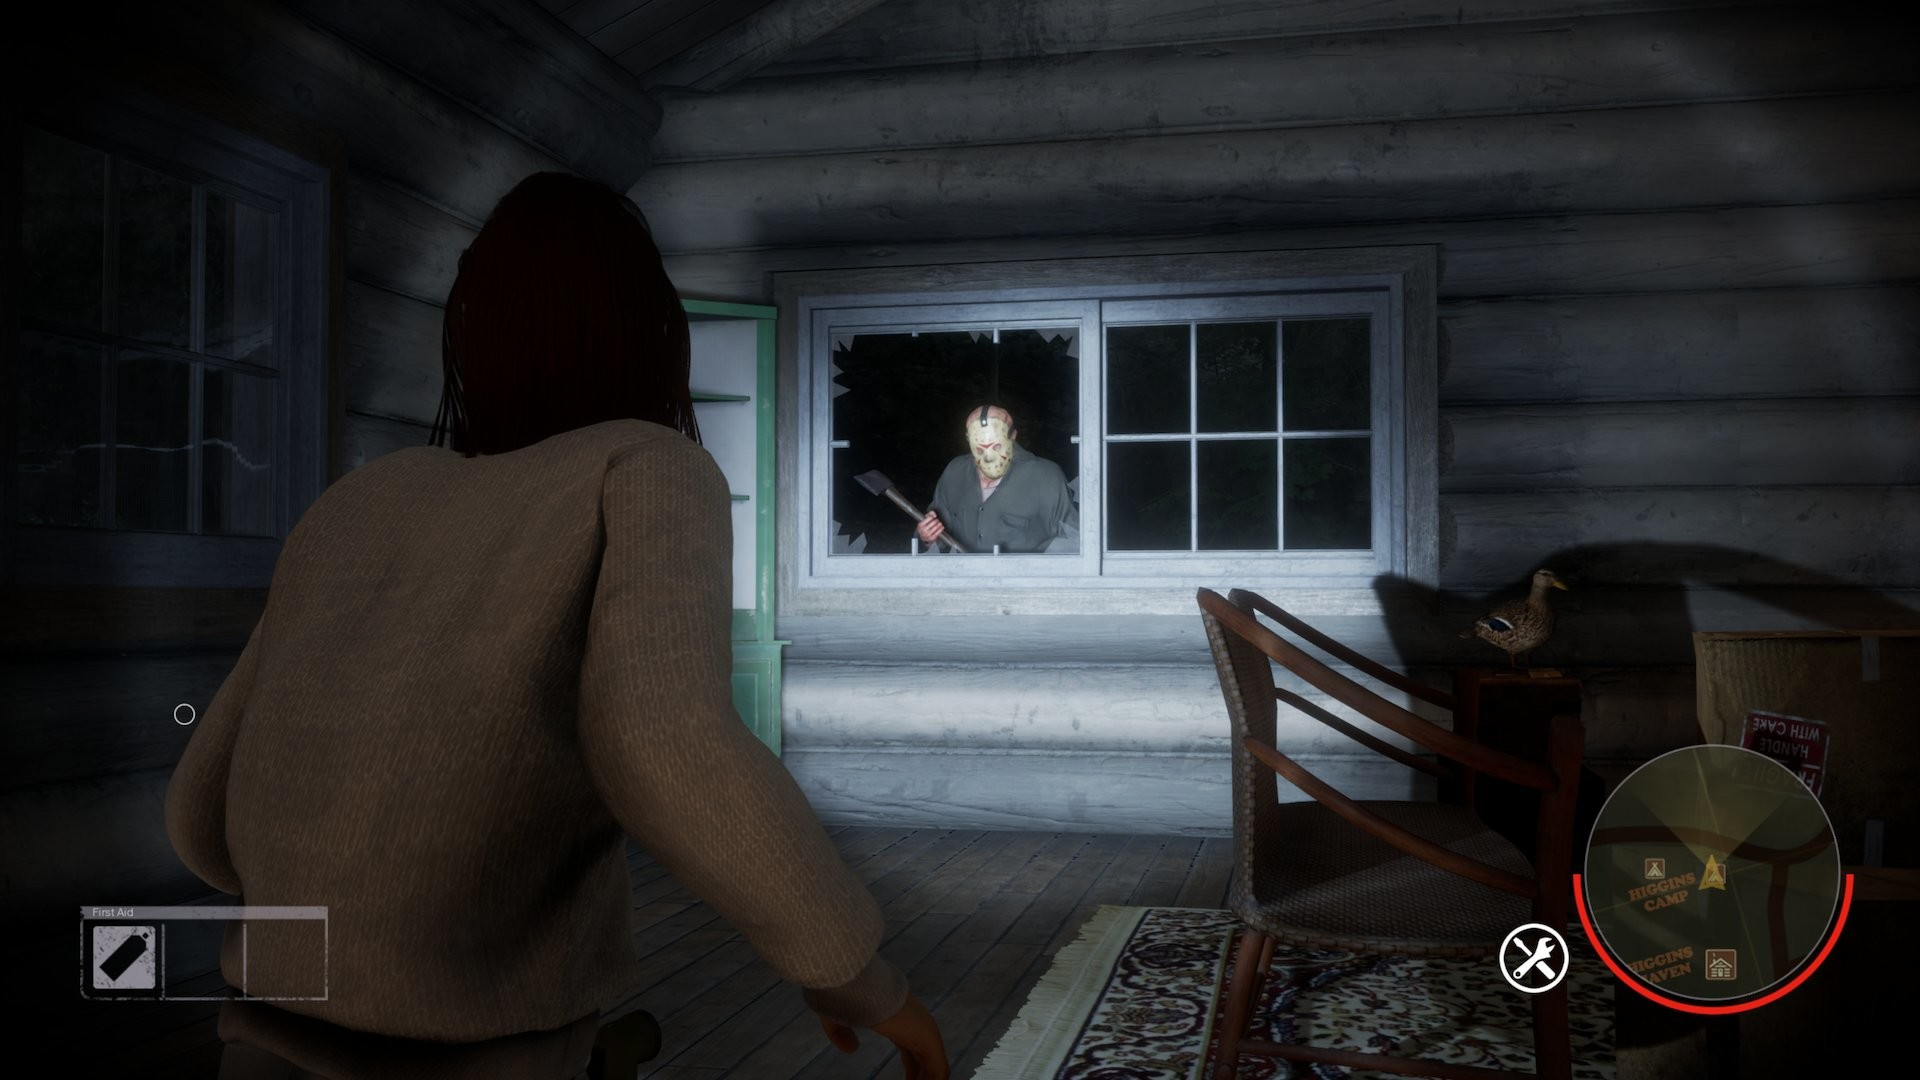 1920x1080 Review: Friday the 13th: The Game is one of the biggest disappointments of  2017